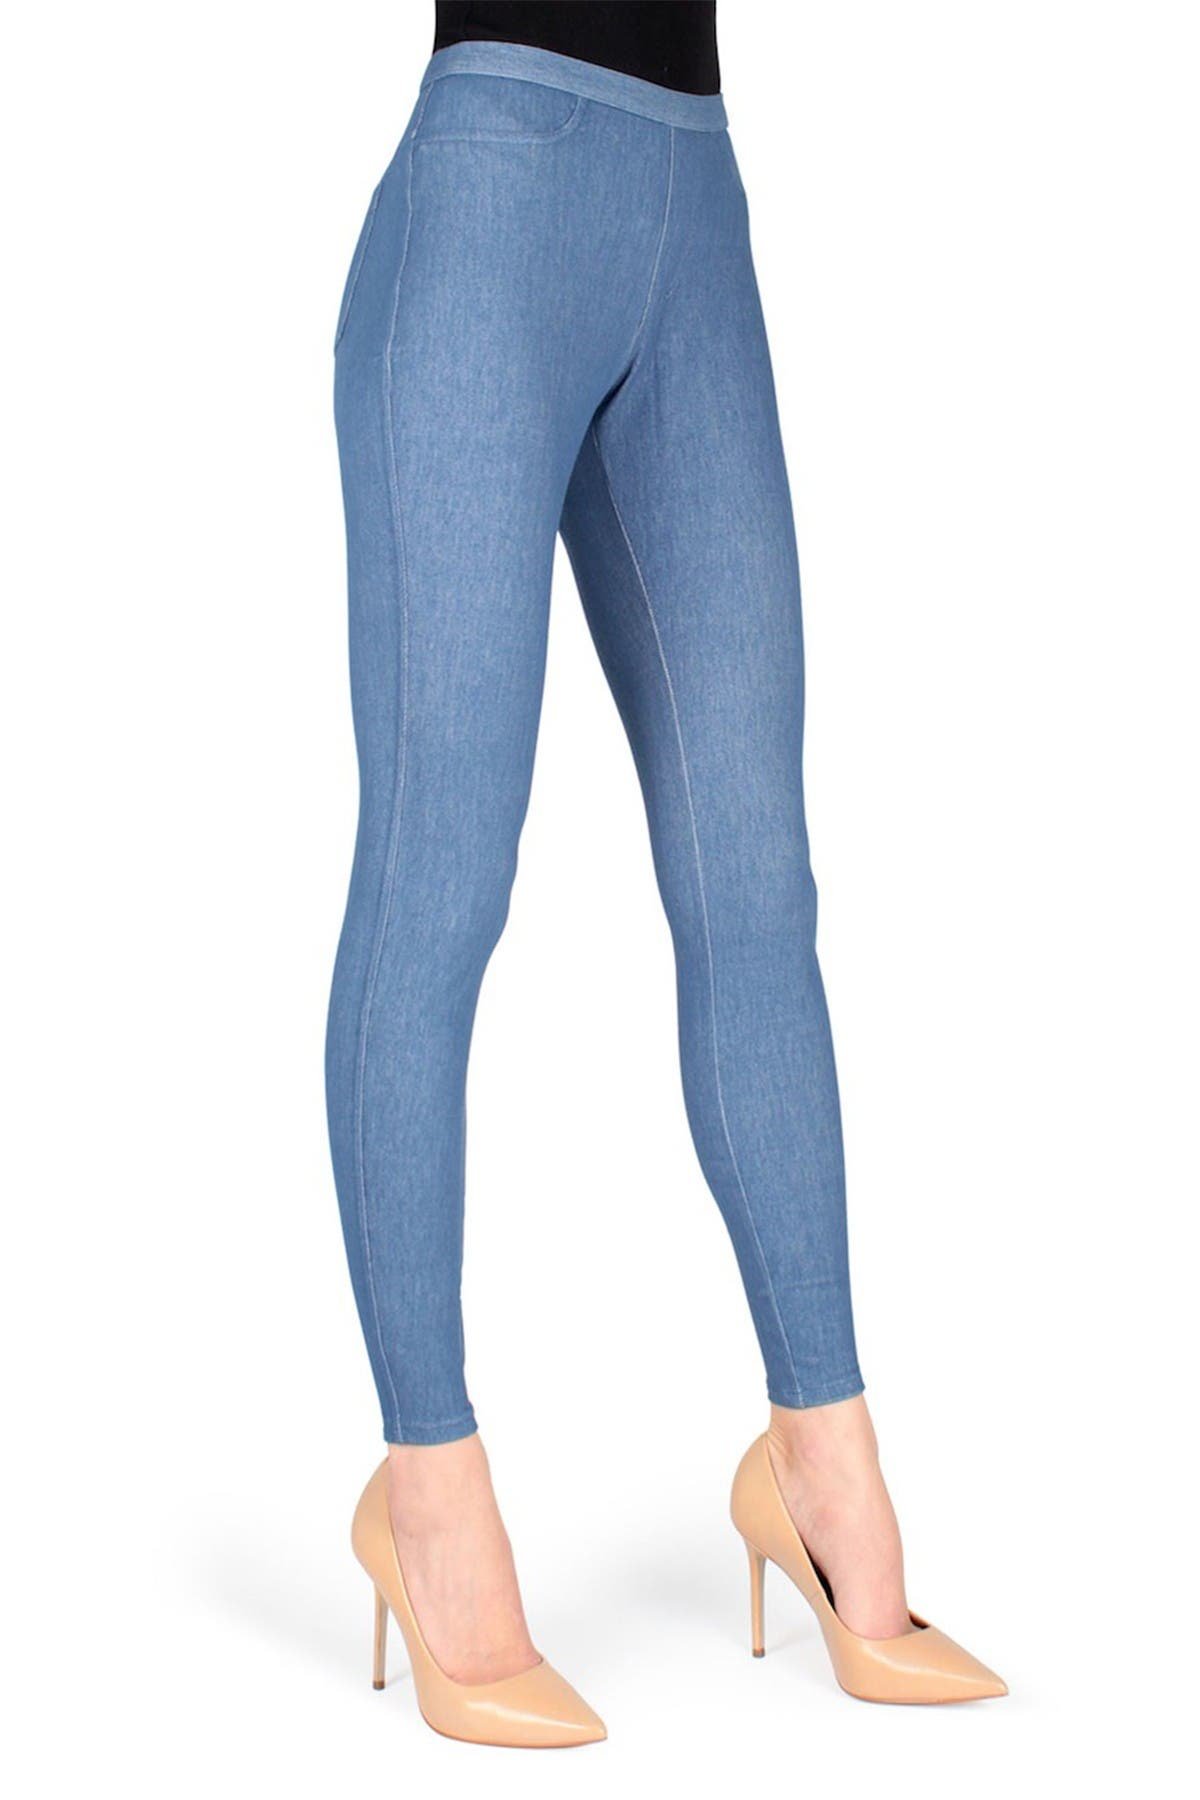 Image of MEMOI Simple Leggings